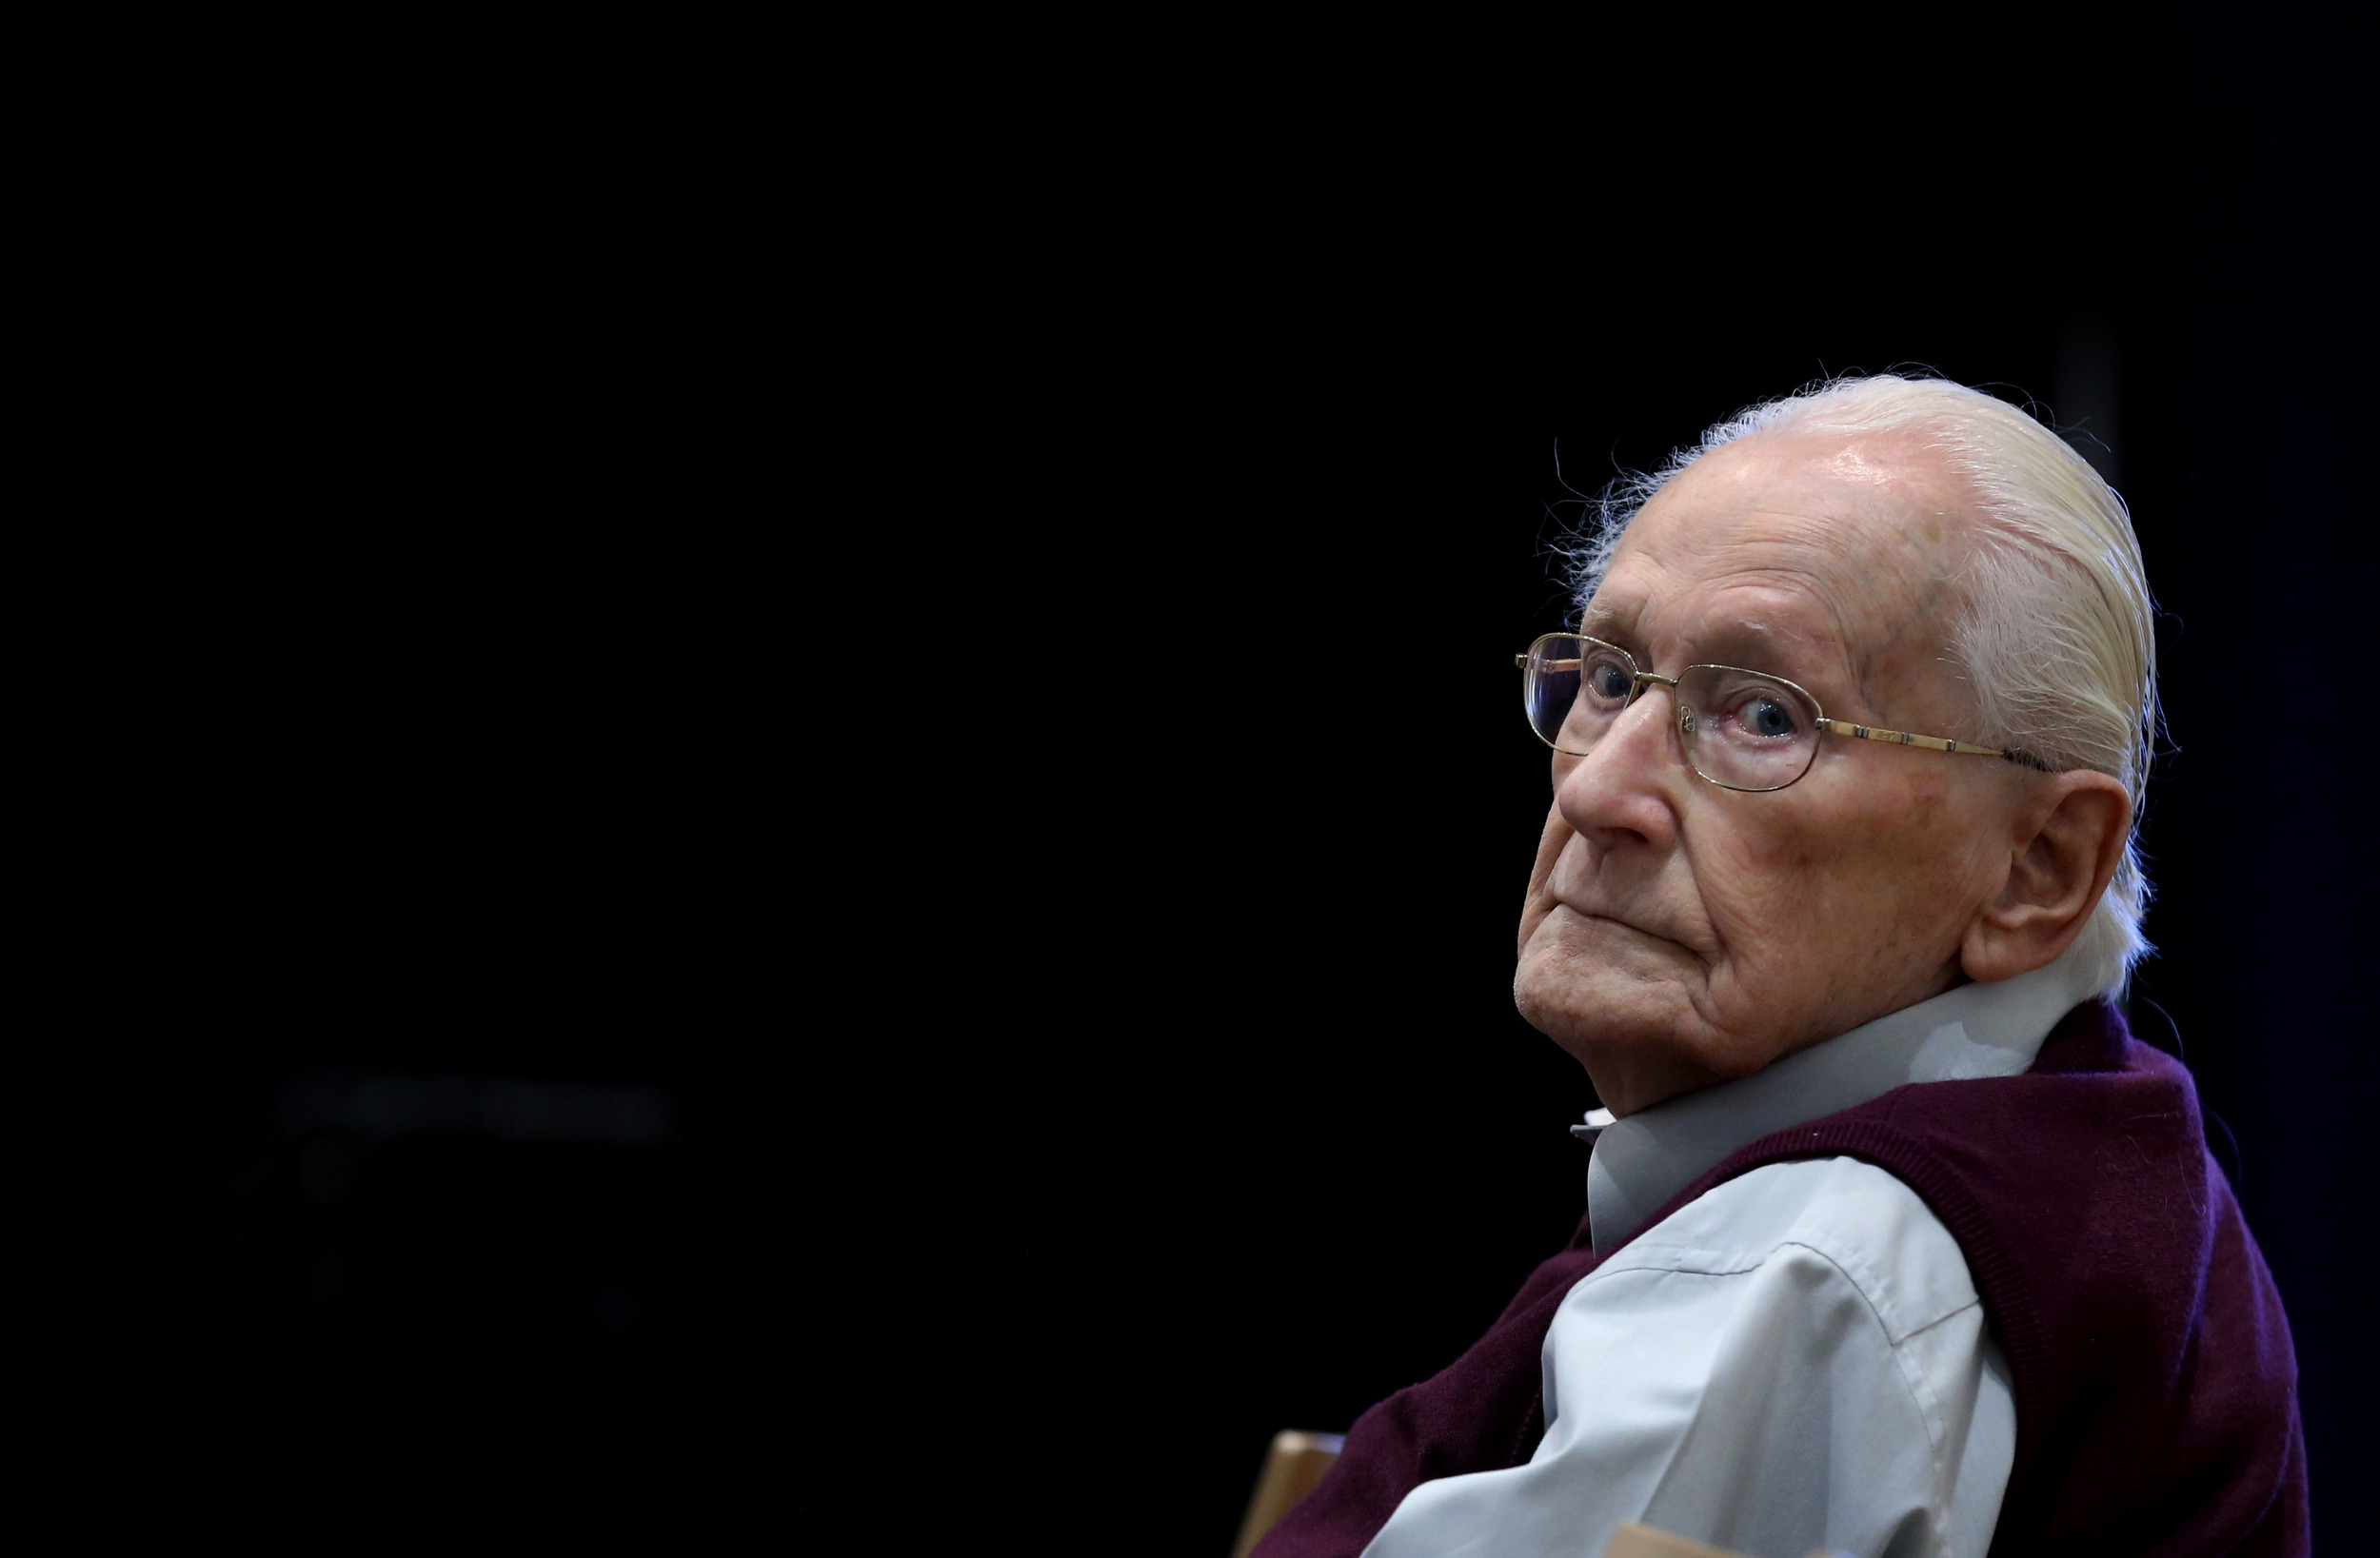 'Accountant of Auschwitz': I Can Only Ask God for Forgiveness